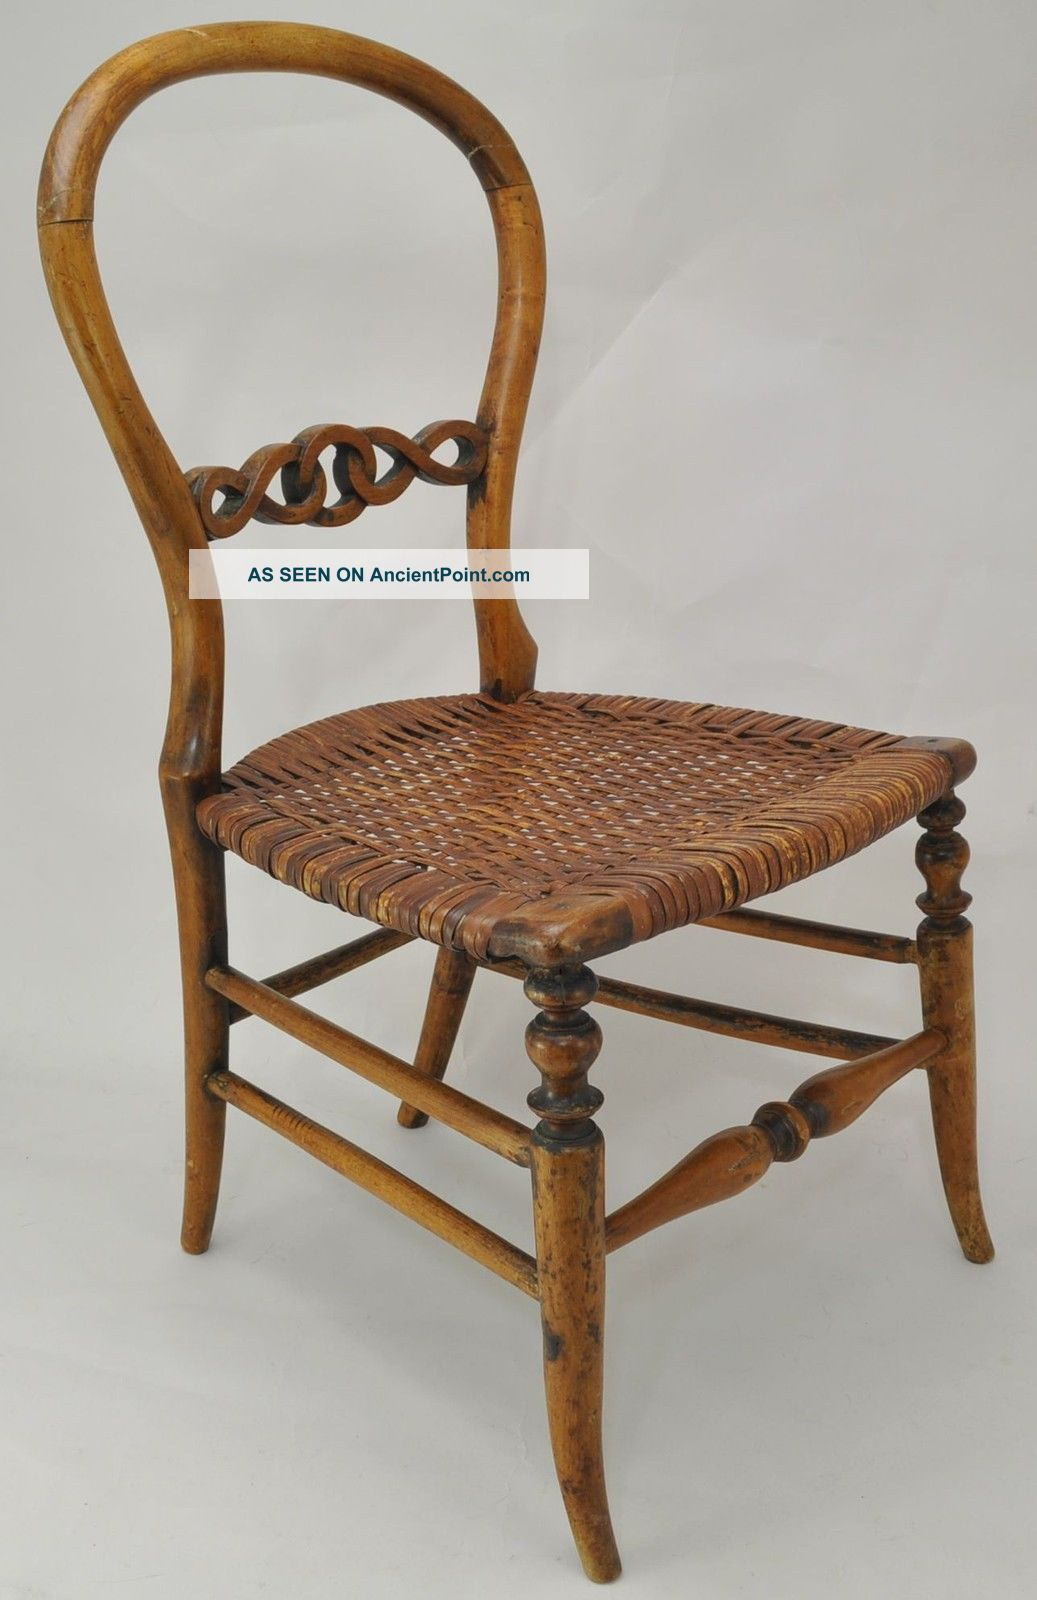 Antique Victorian Balloon Back Child Or Doll Size Fruit Wood And Cane Seat Chair 1800-1899 photo